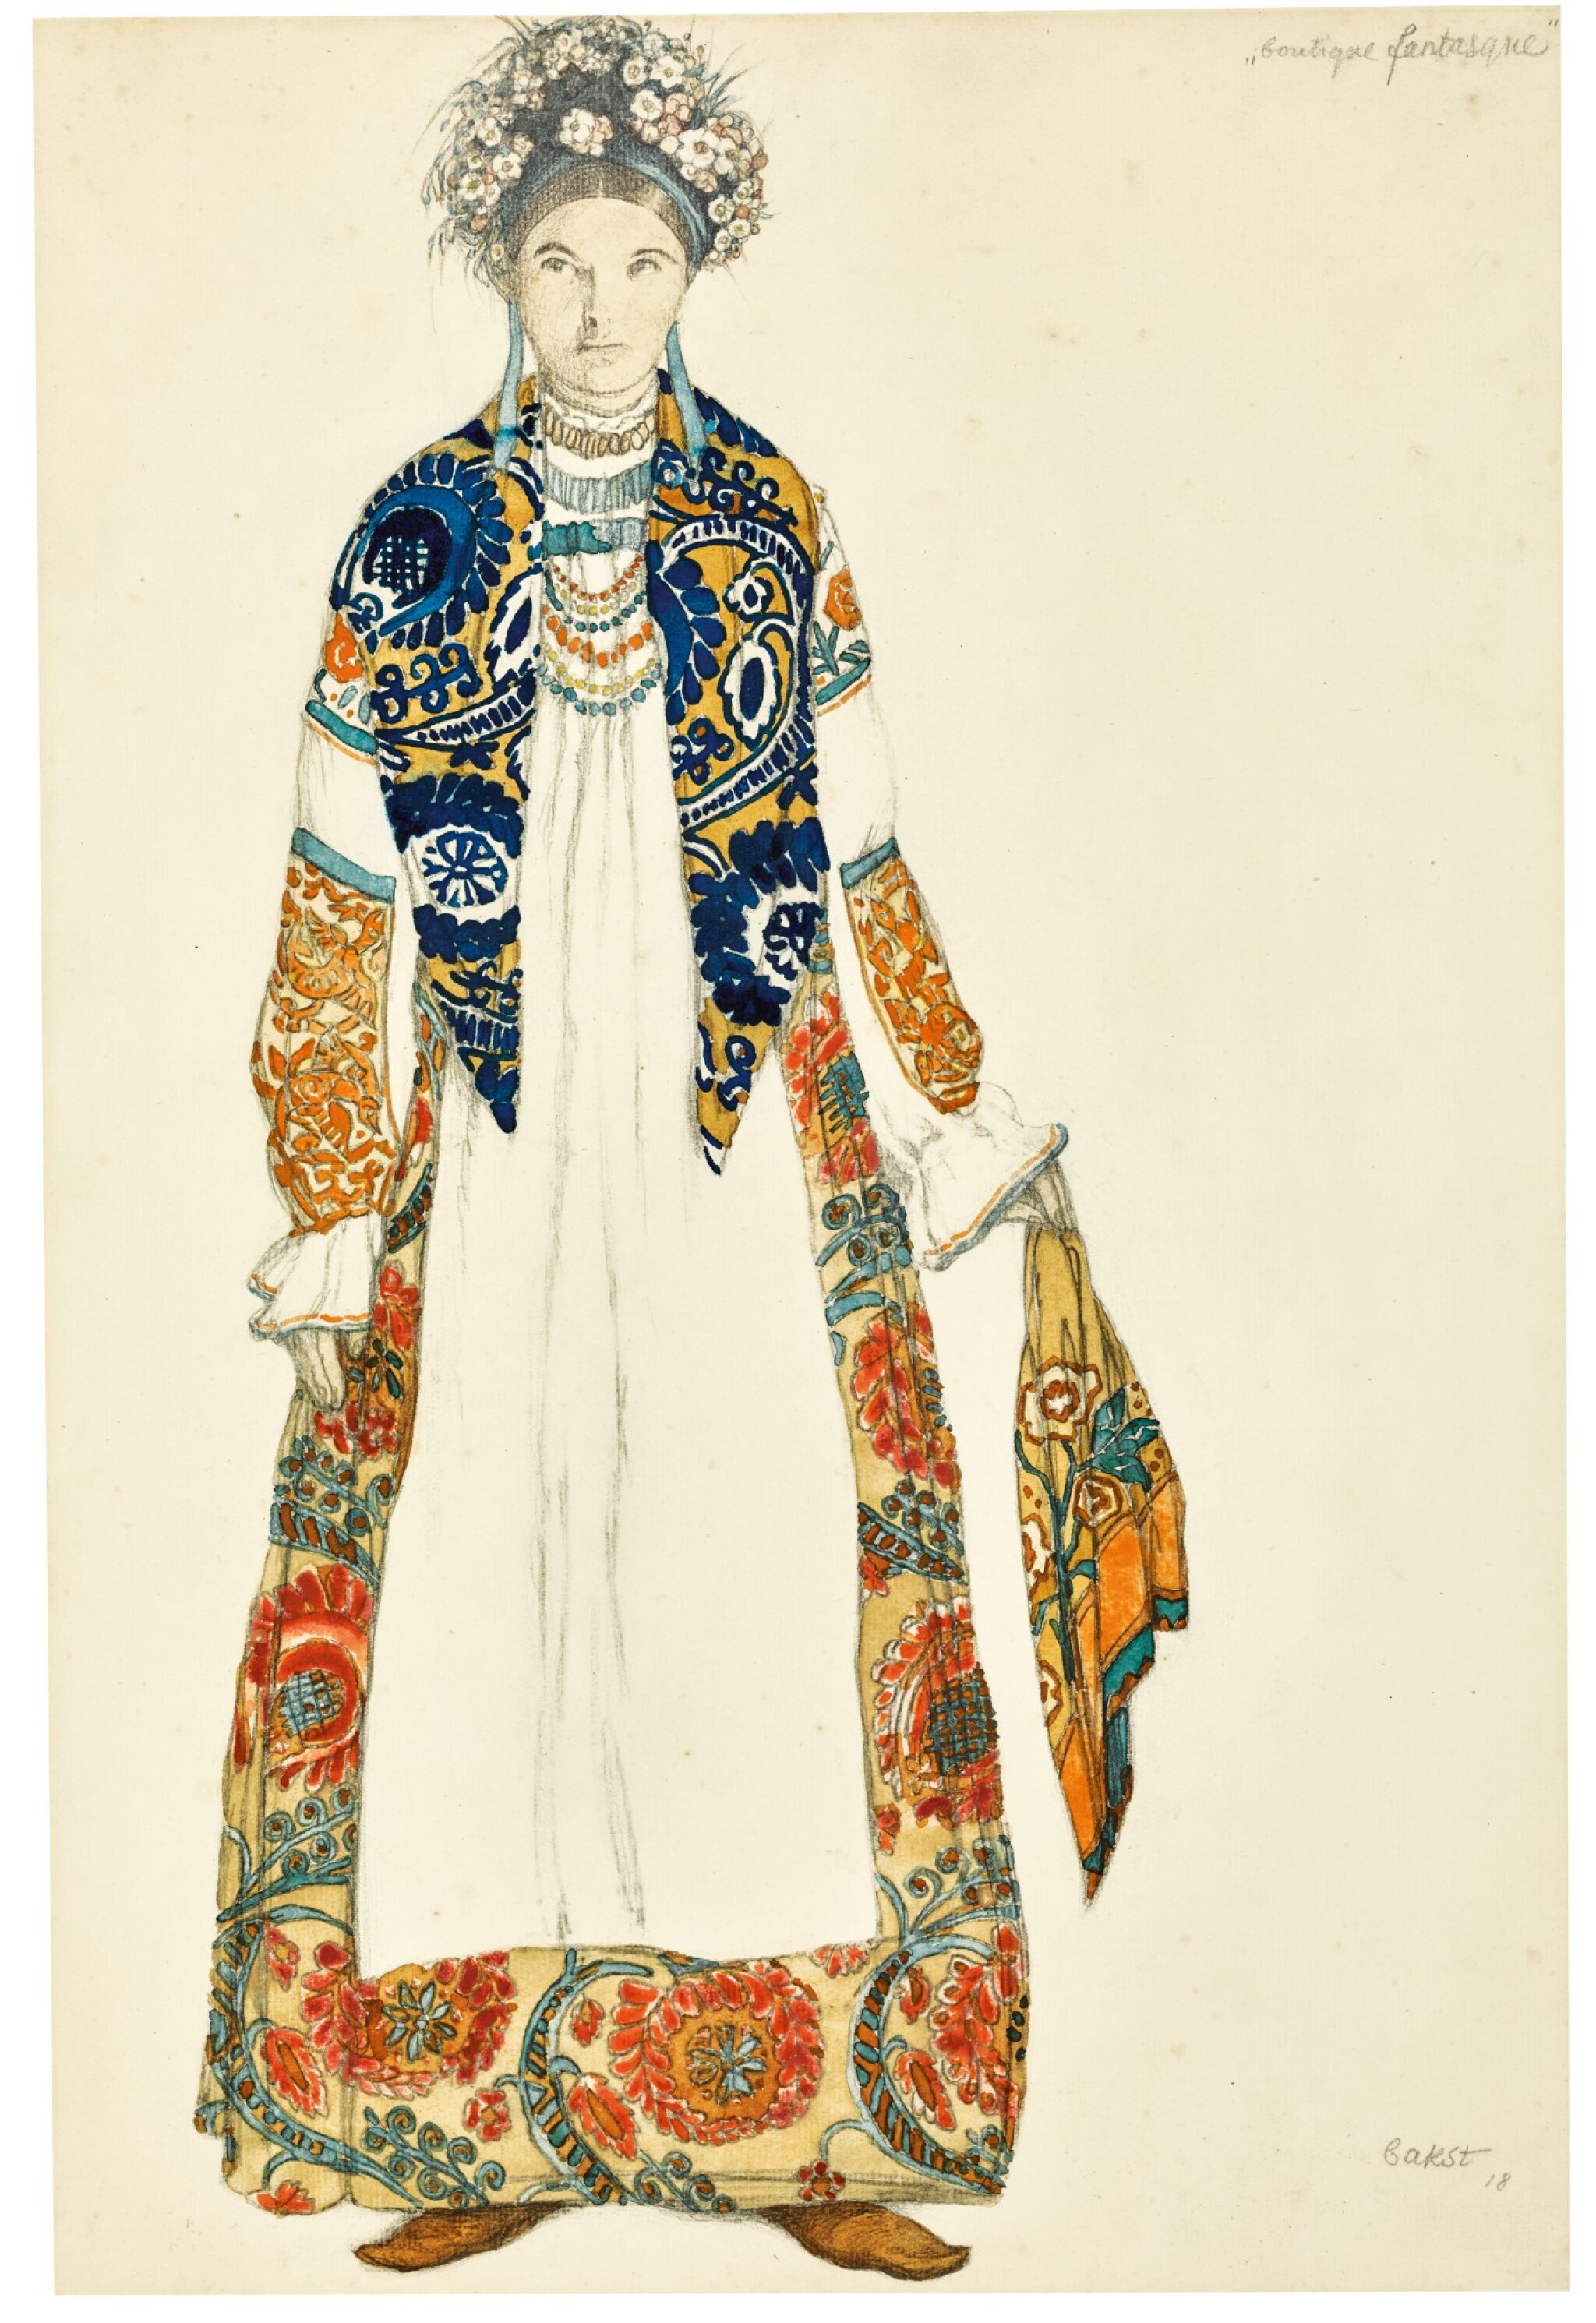 View full screen - View 1 of Lot 70. Costume Design for the Russian Doll in La Boutique fantasque.